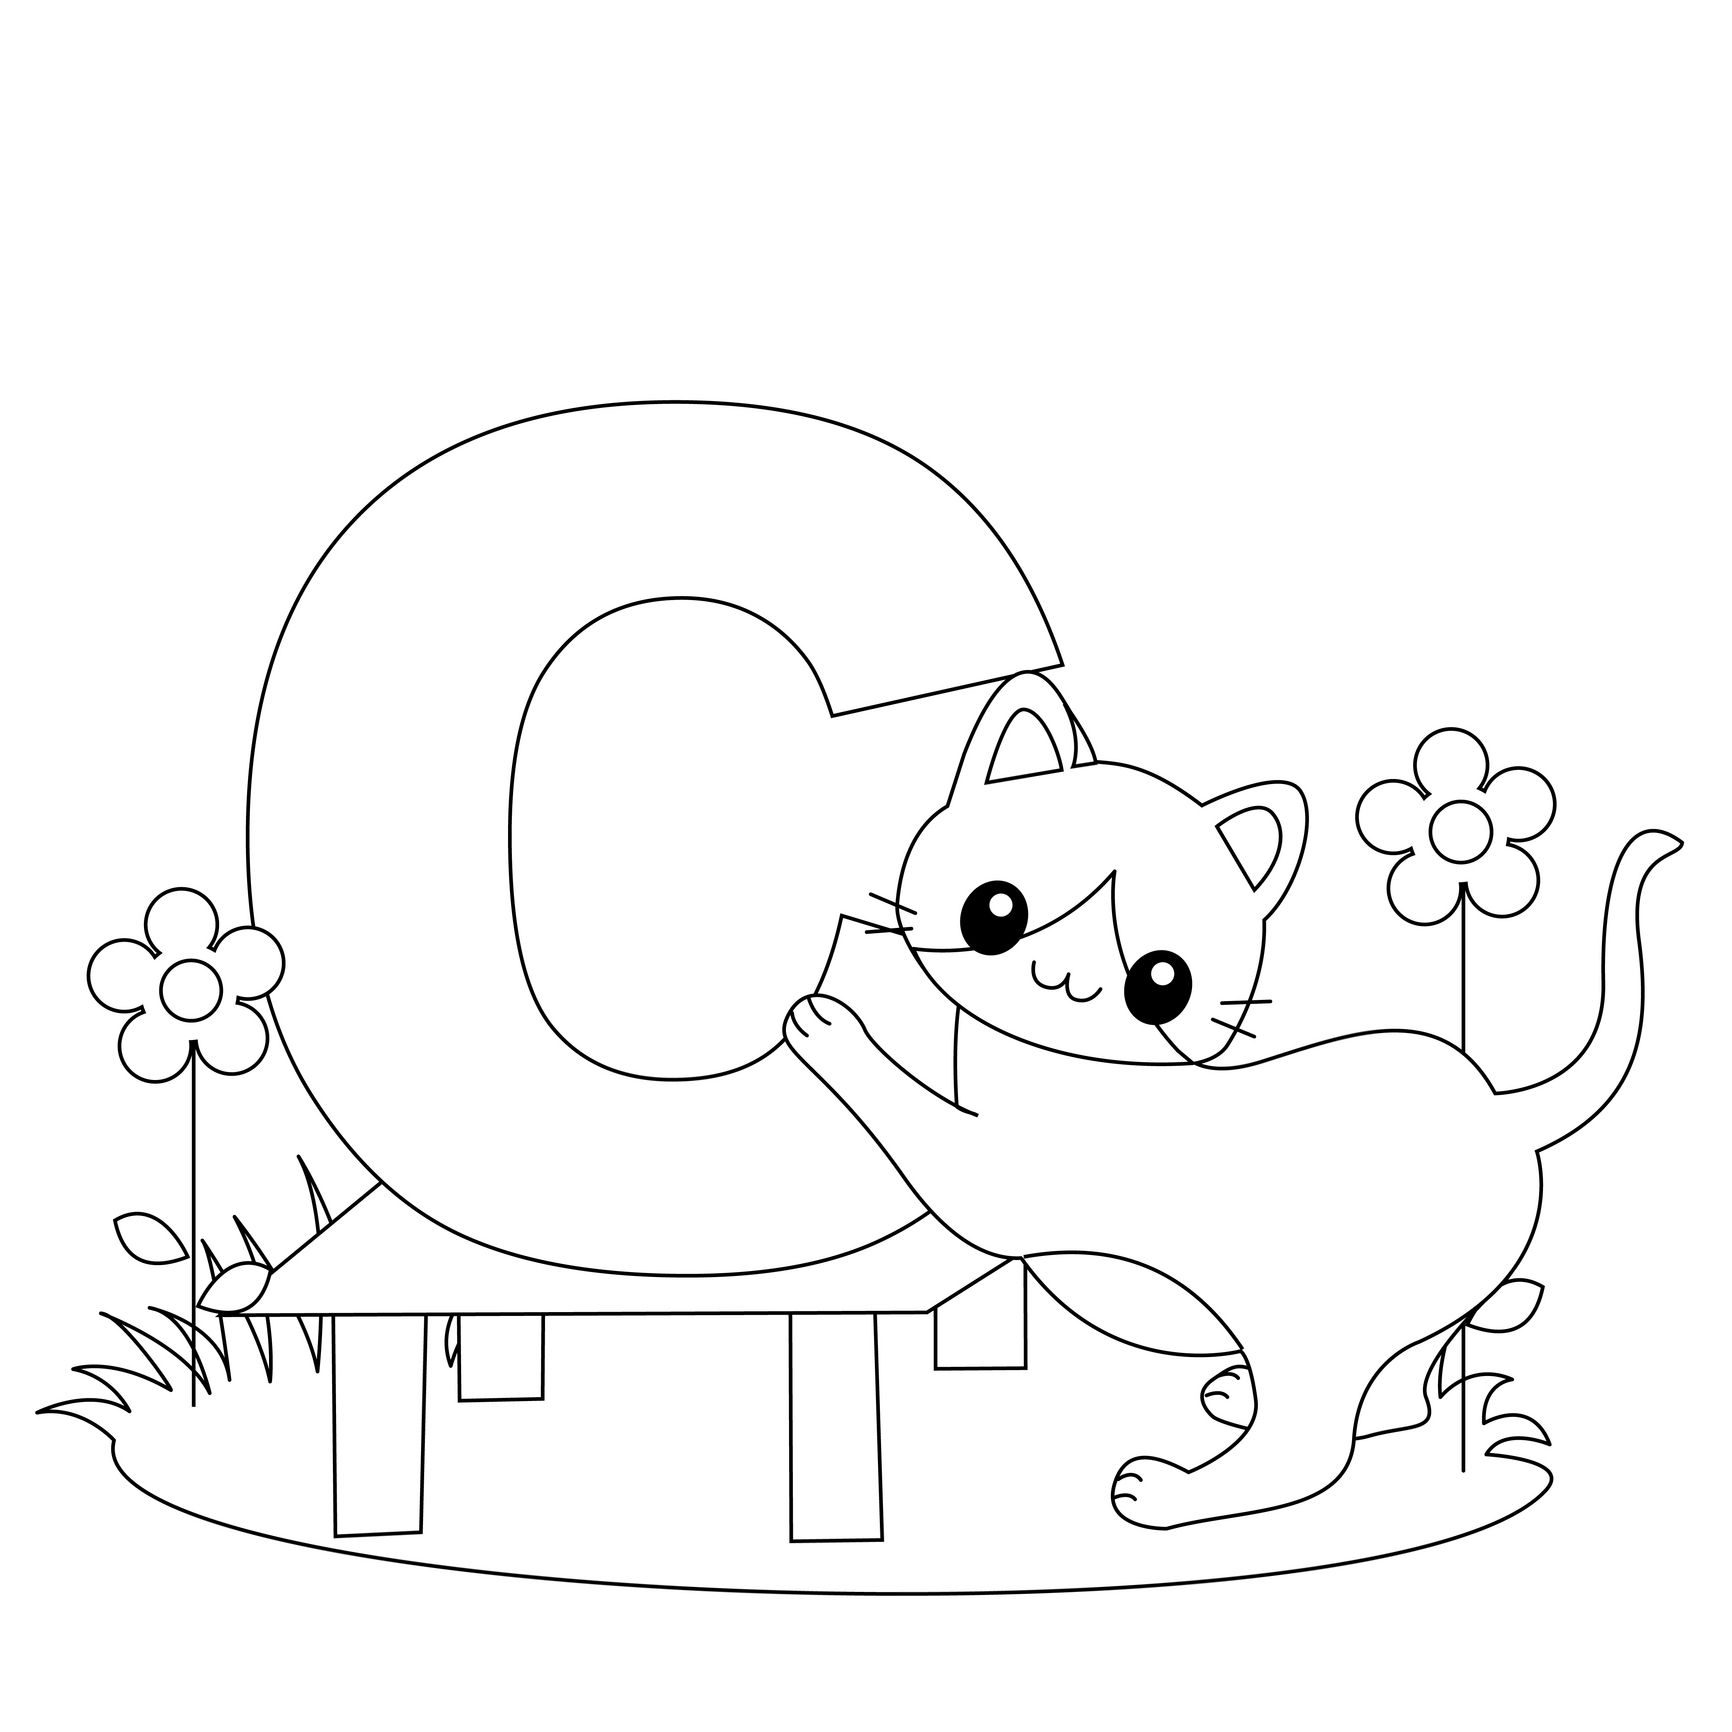 Animal Alphabet Letter C Is For Cat Here S A Simple